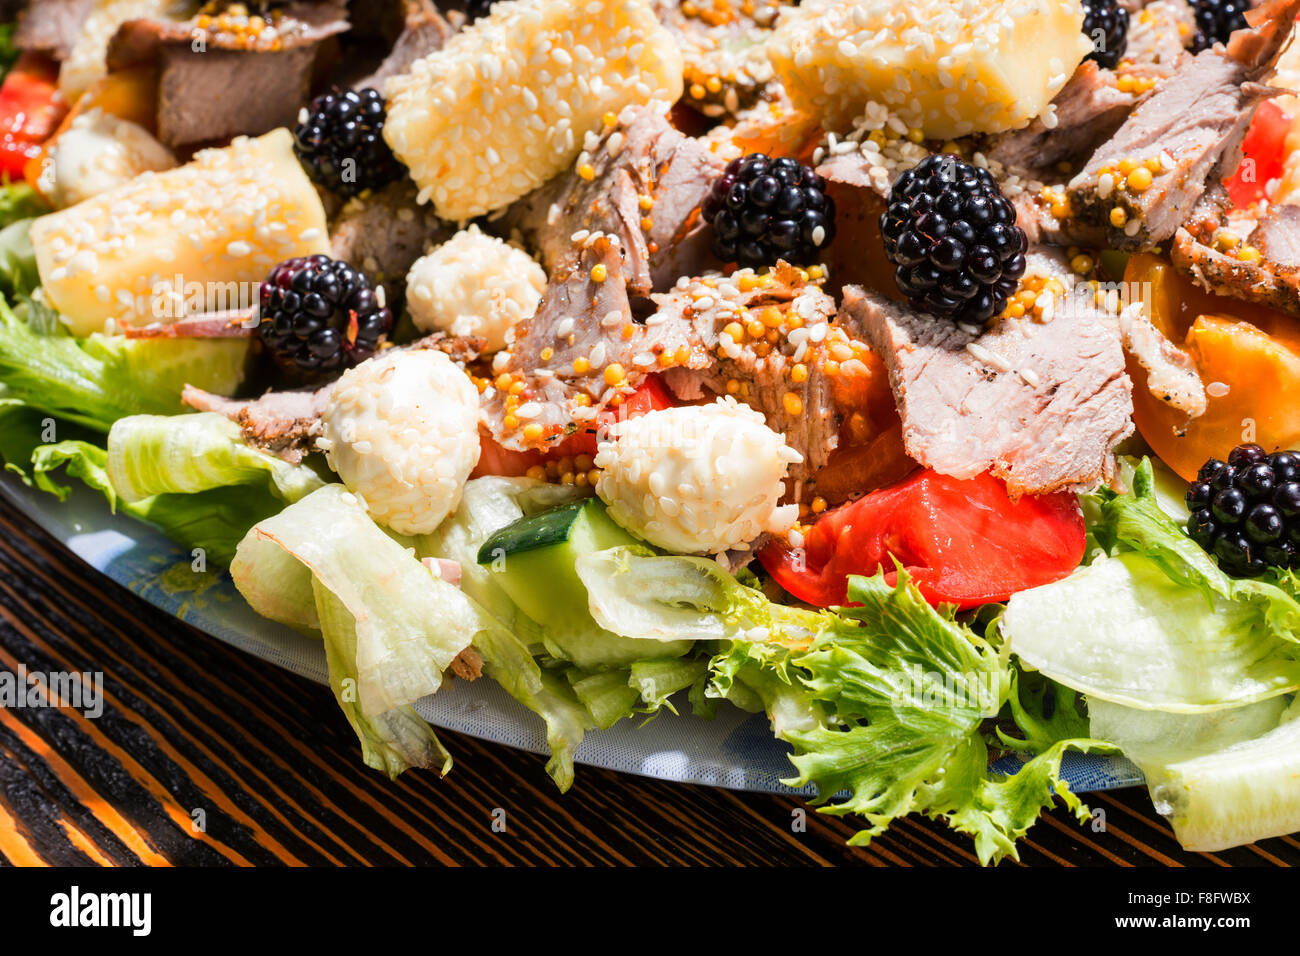 Close Up of Gourmet Salad Made with Fresh Fruit and Vegetables, Variety of Cheeses and Meats on Rustic Wooden Table Stock Photo